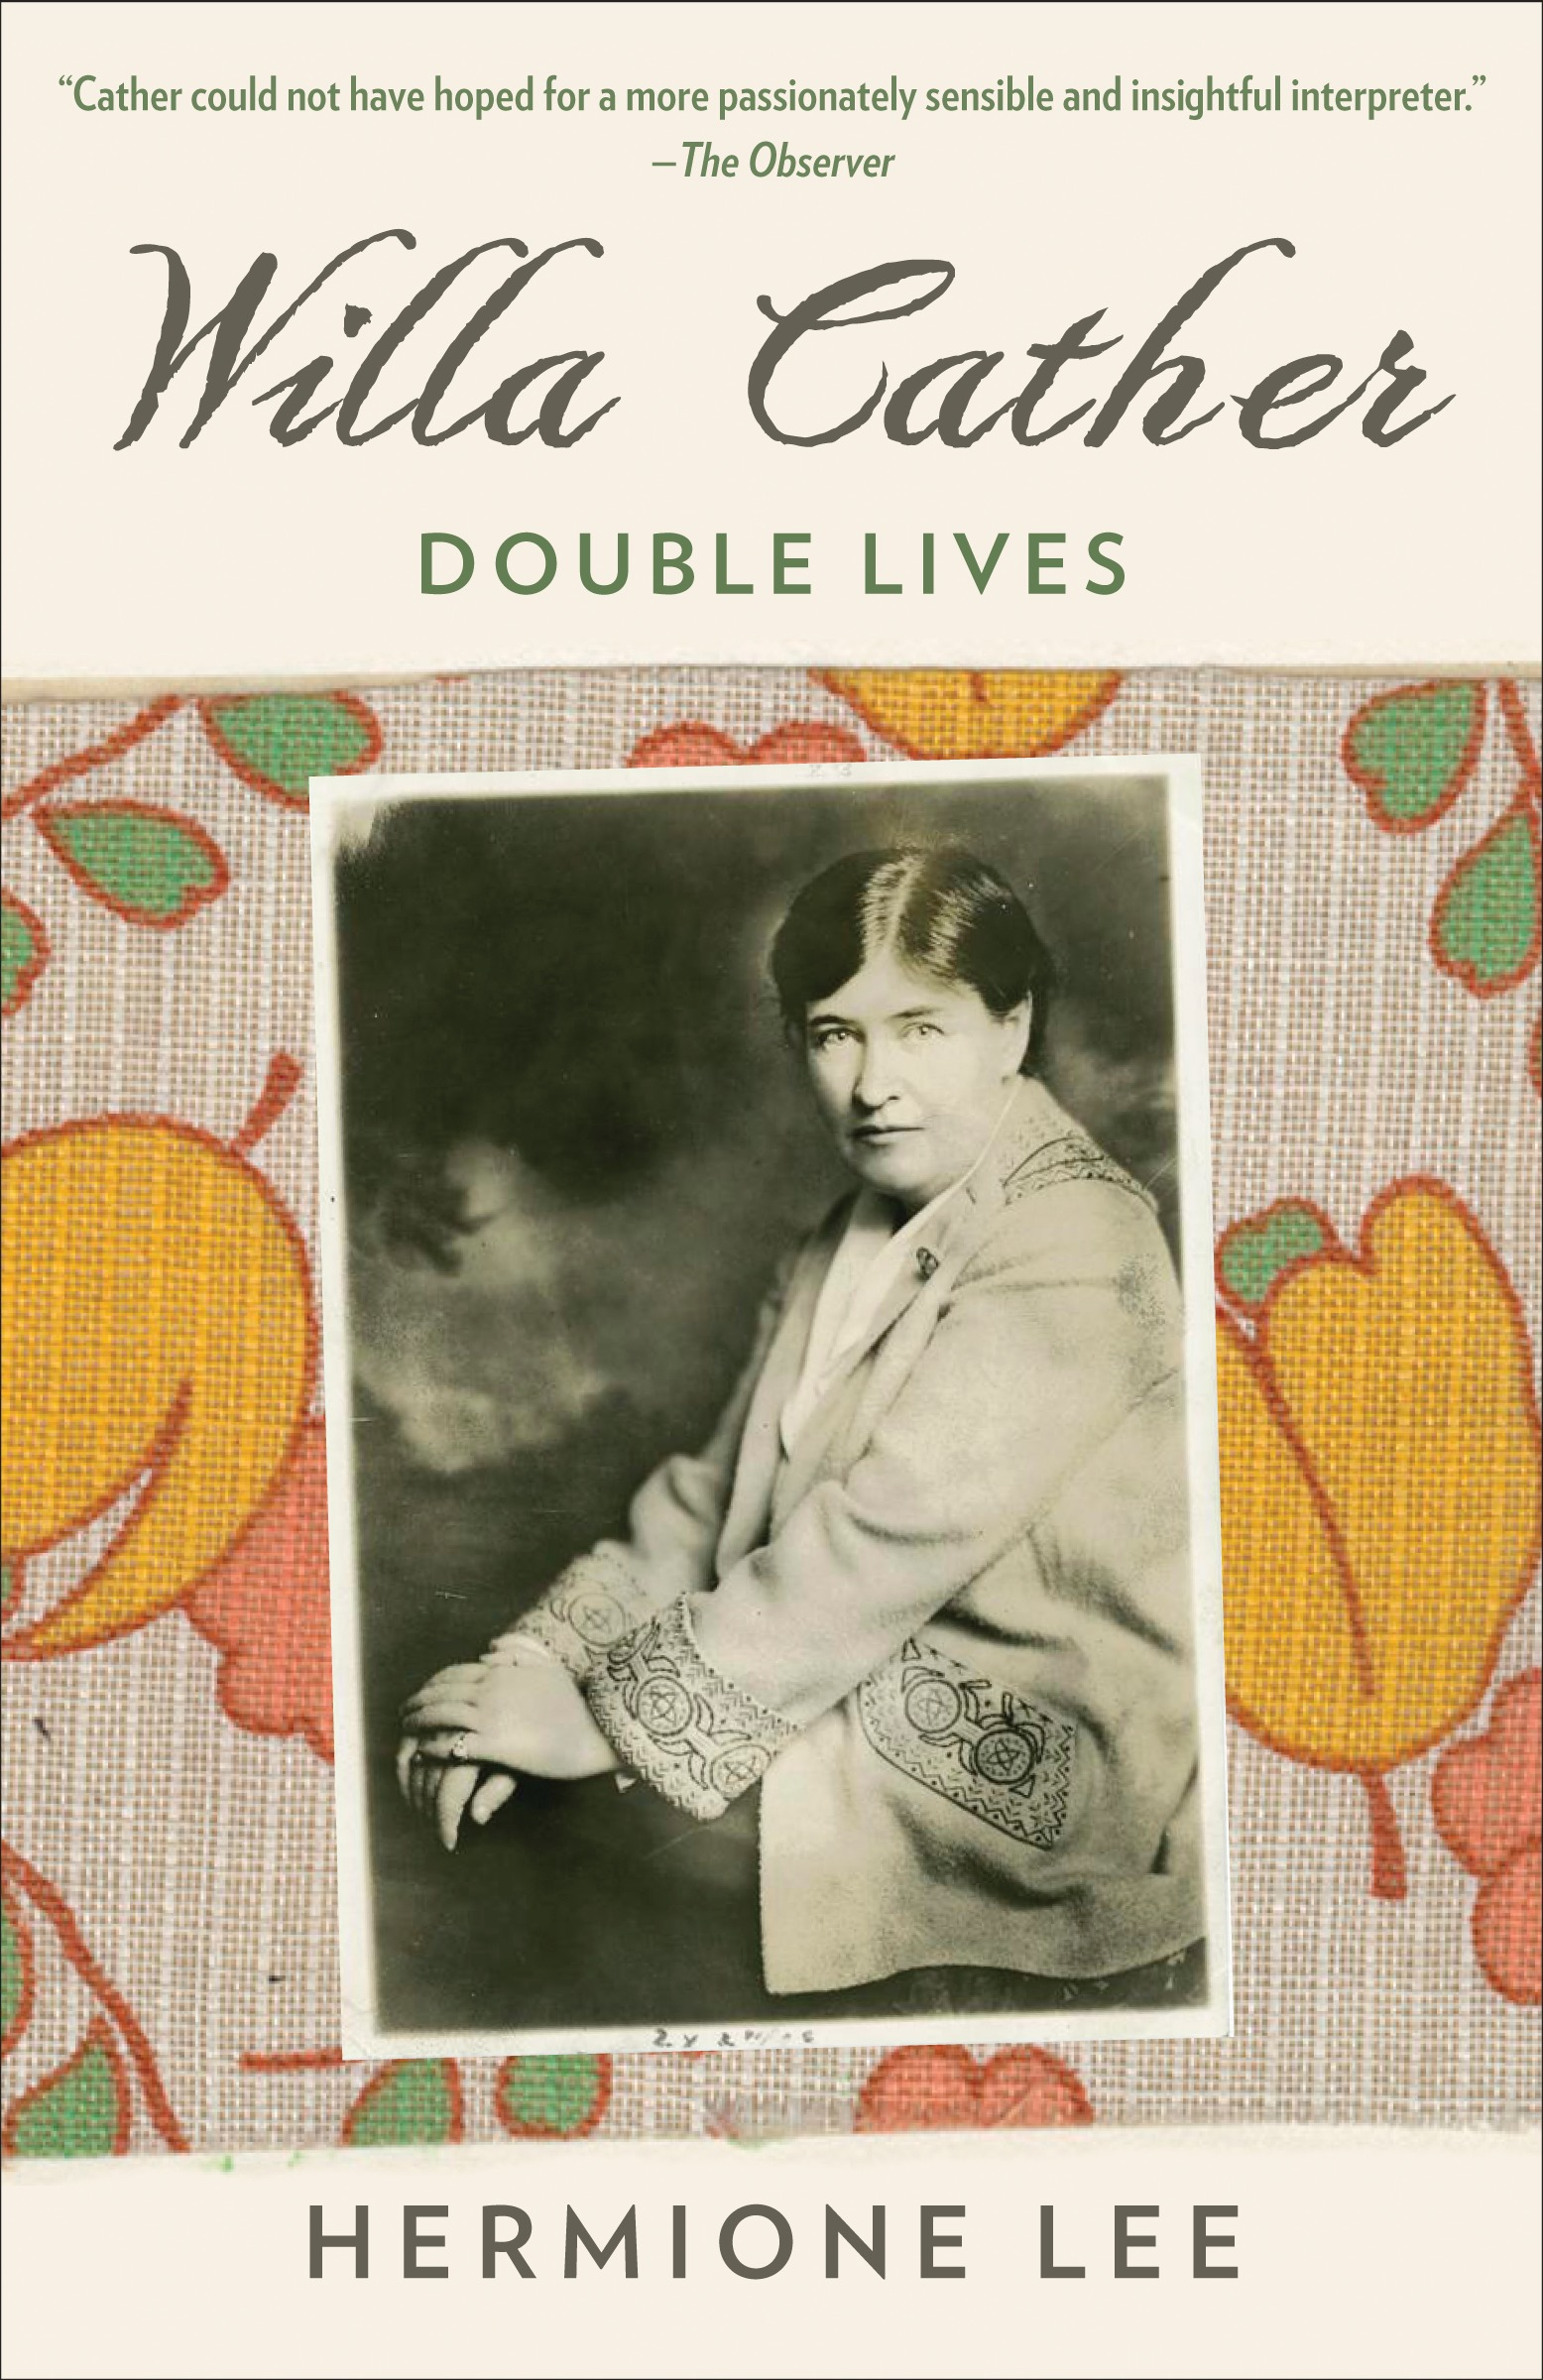 Willa Cather by Hermione Lee, Published by Vintage 2017